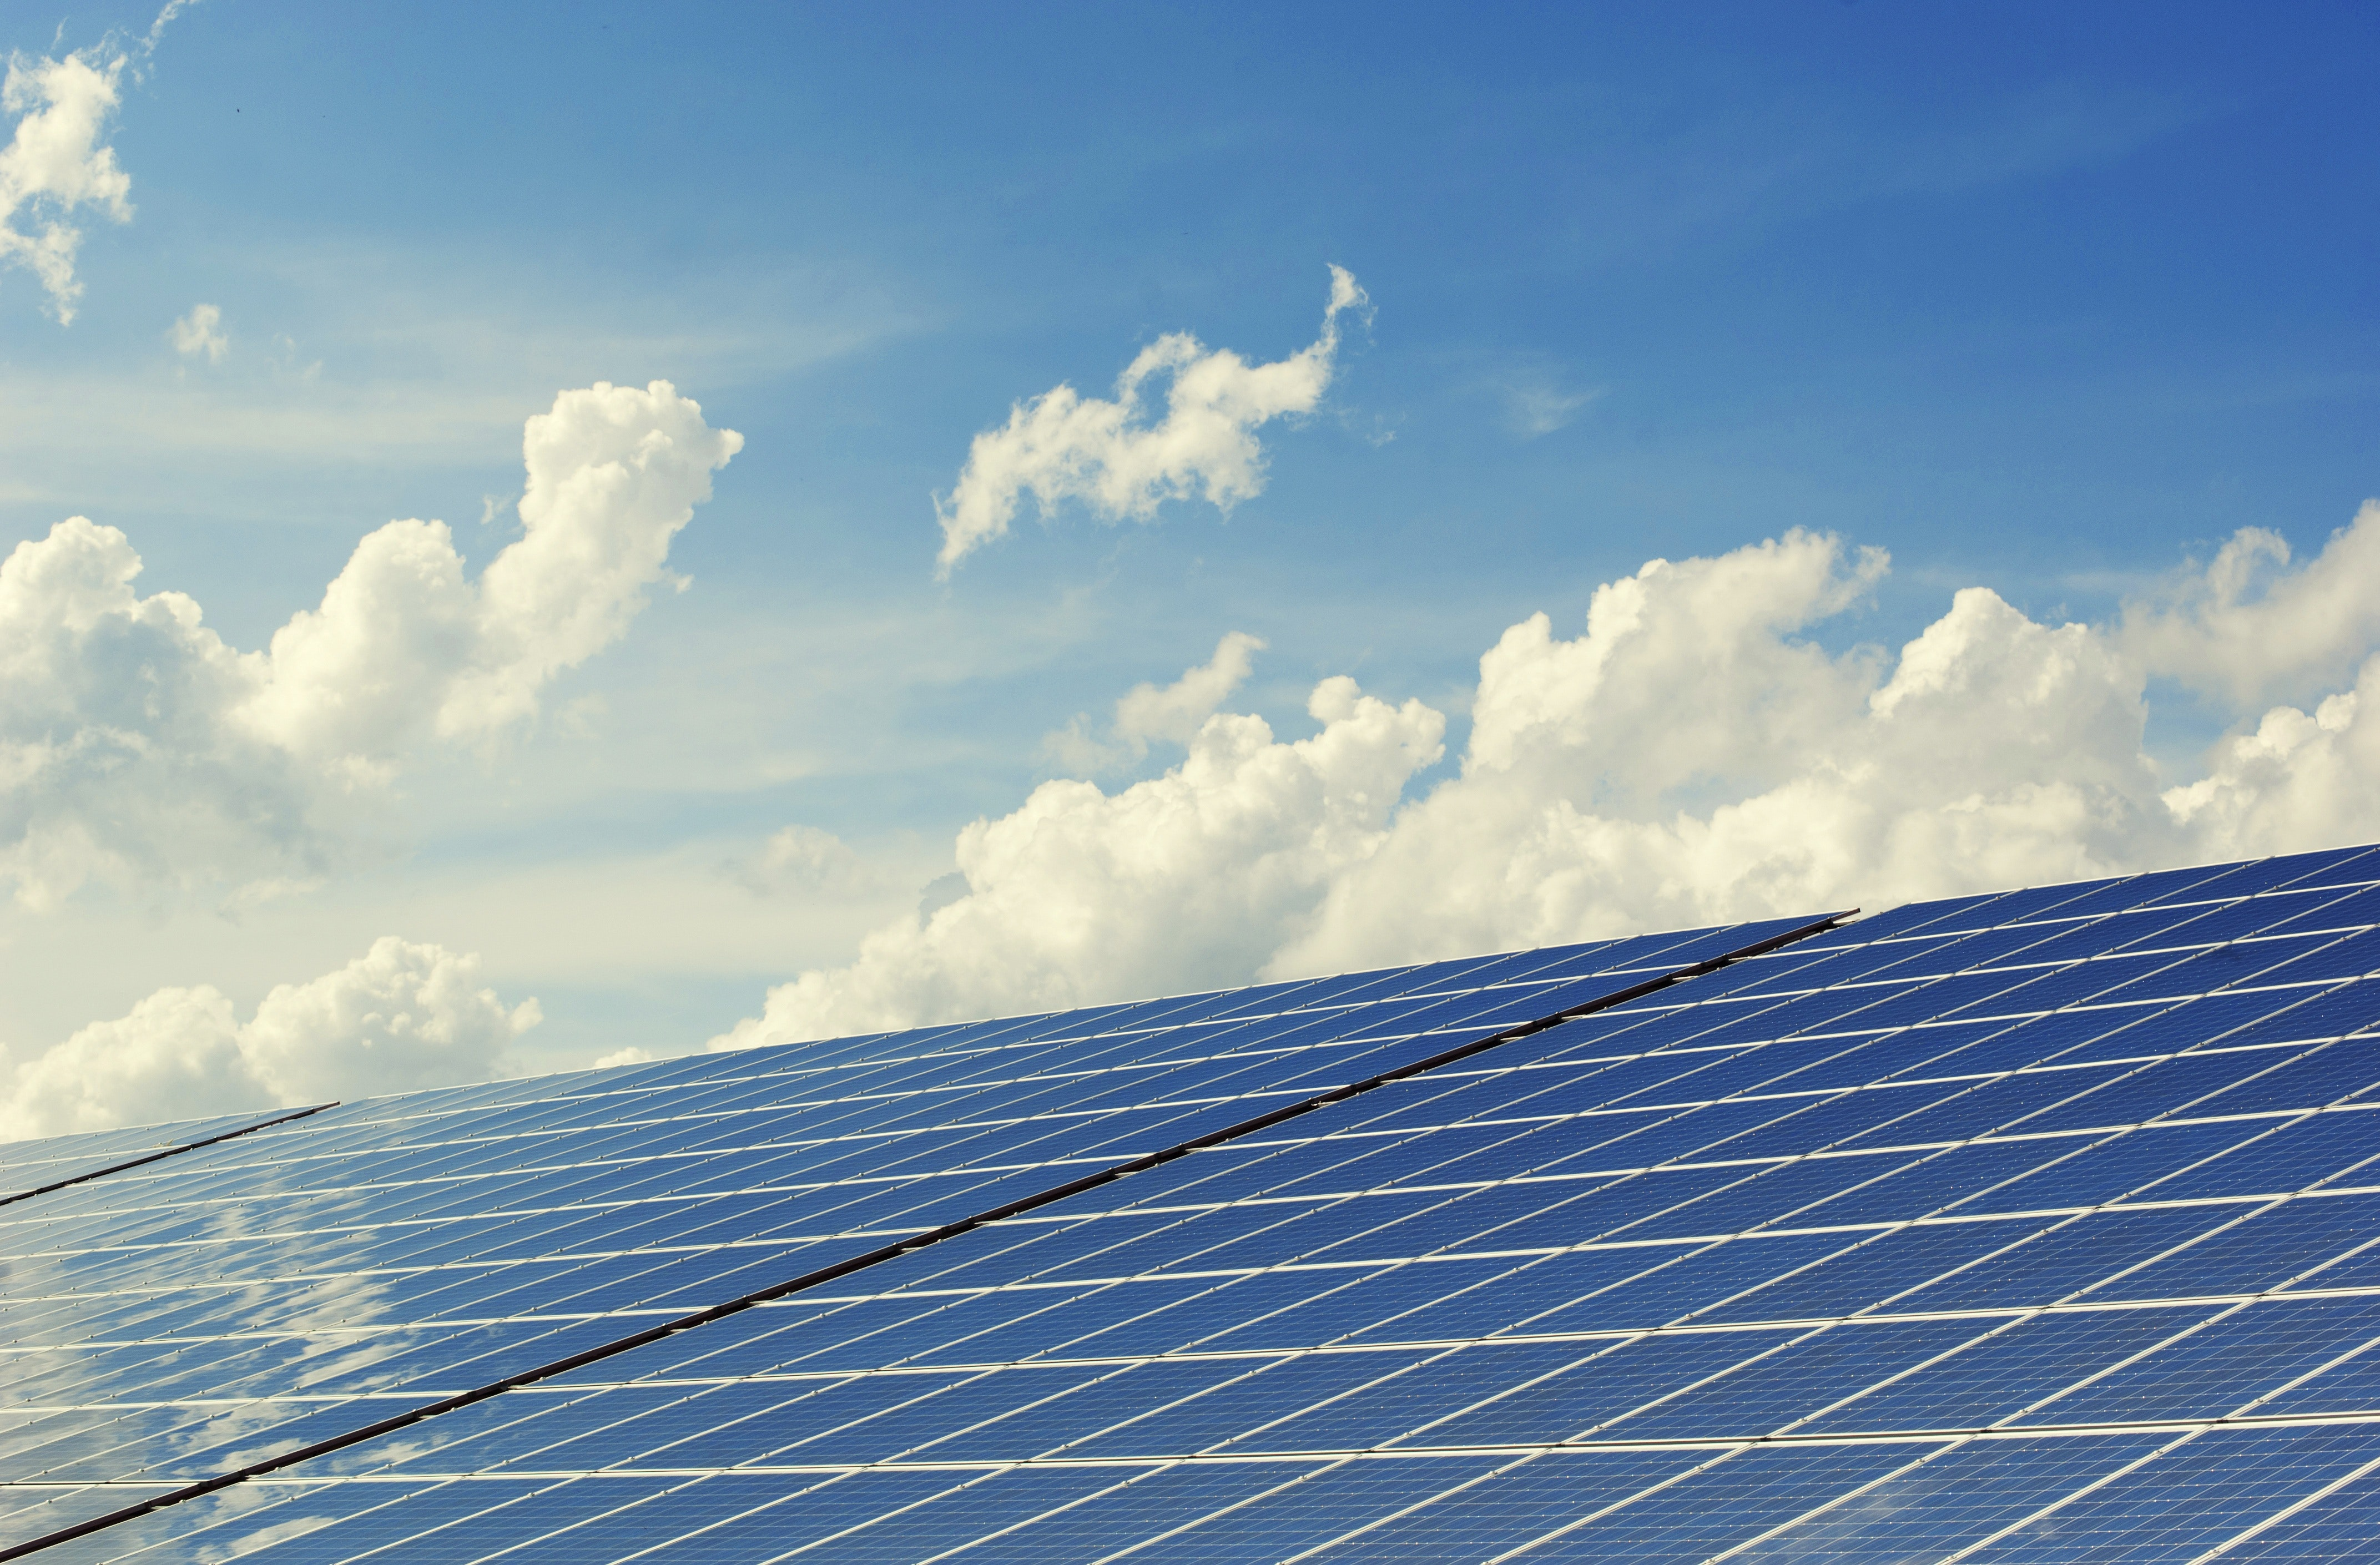 Solar power supply in the European Union during June and July rose to a record high in 2021, accounting for 10% of total electricity produced in the region, a report by independent climate think-tank Ember said.